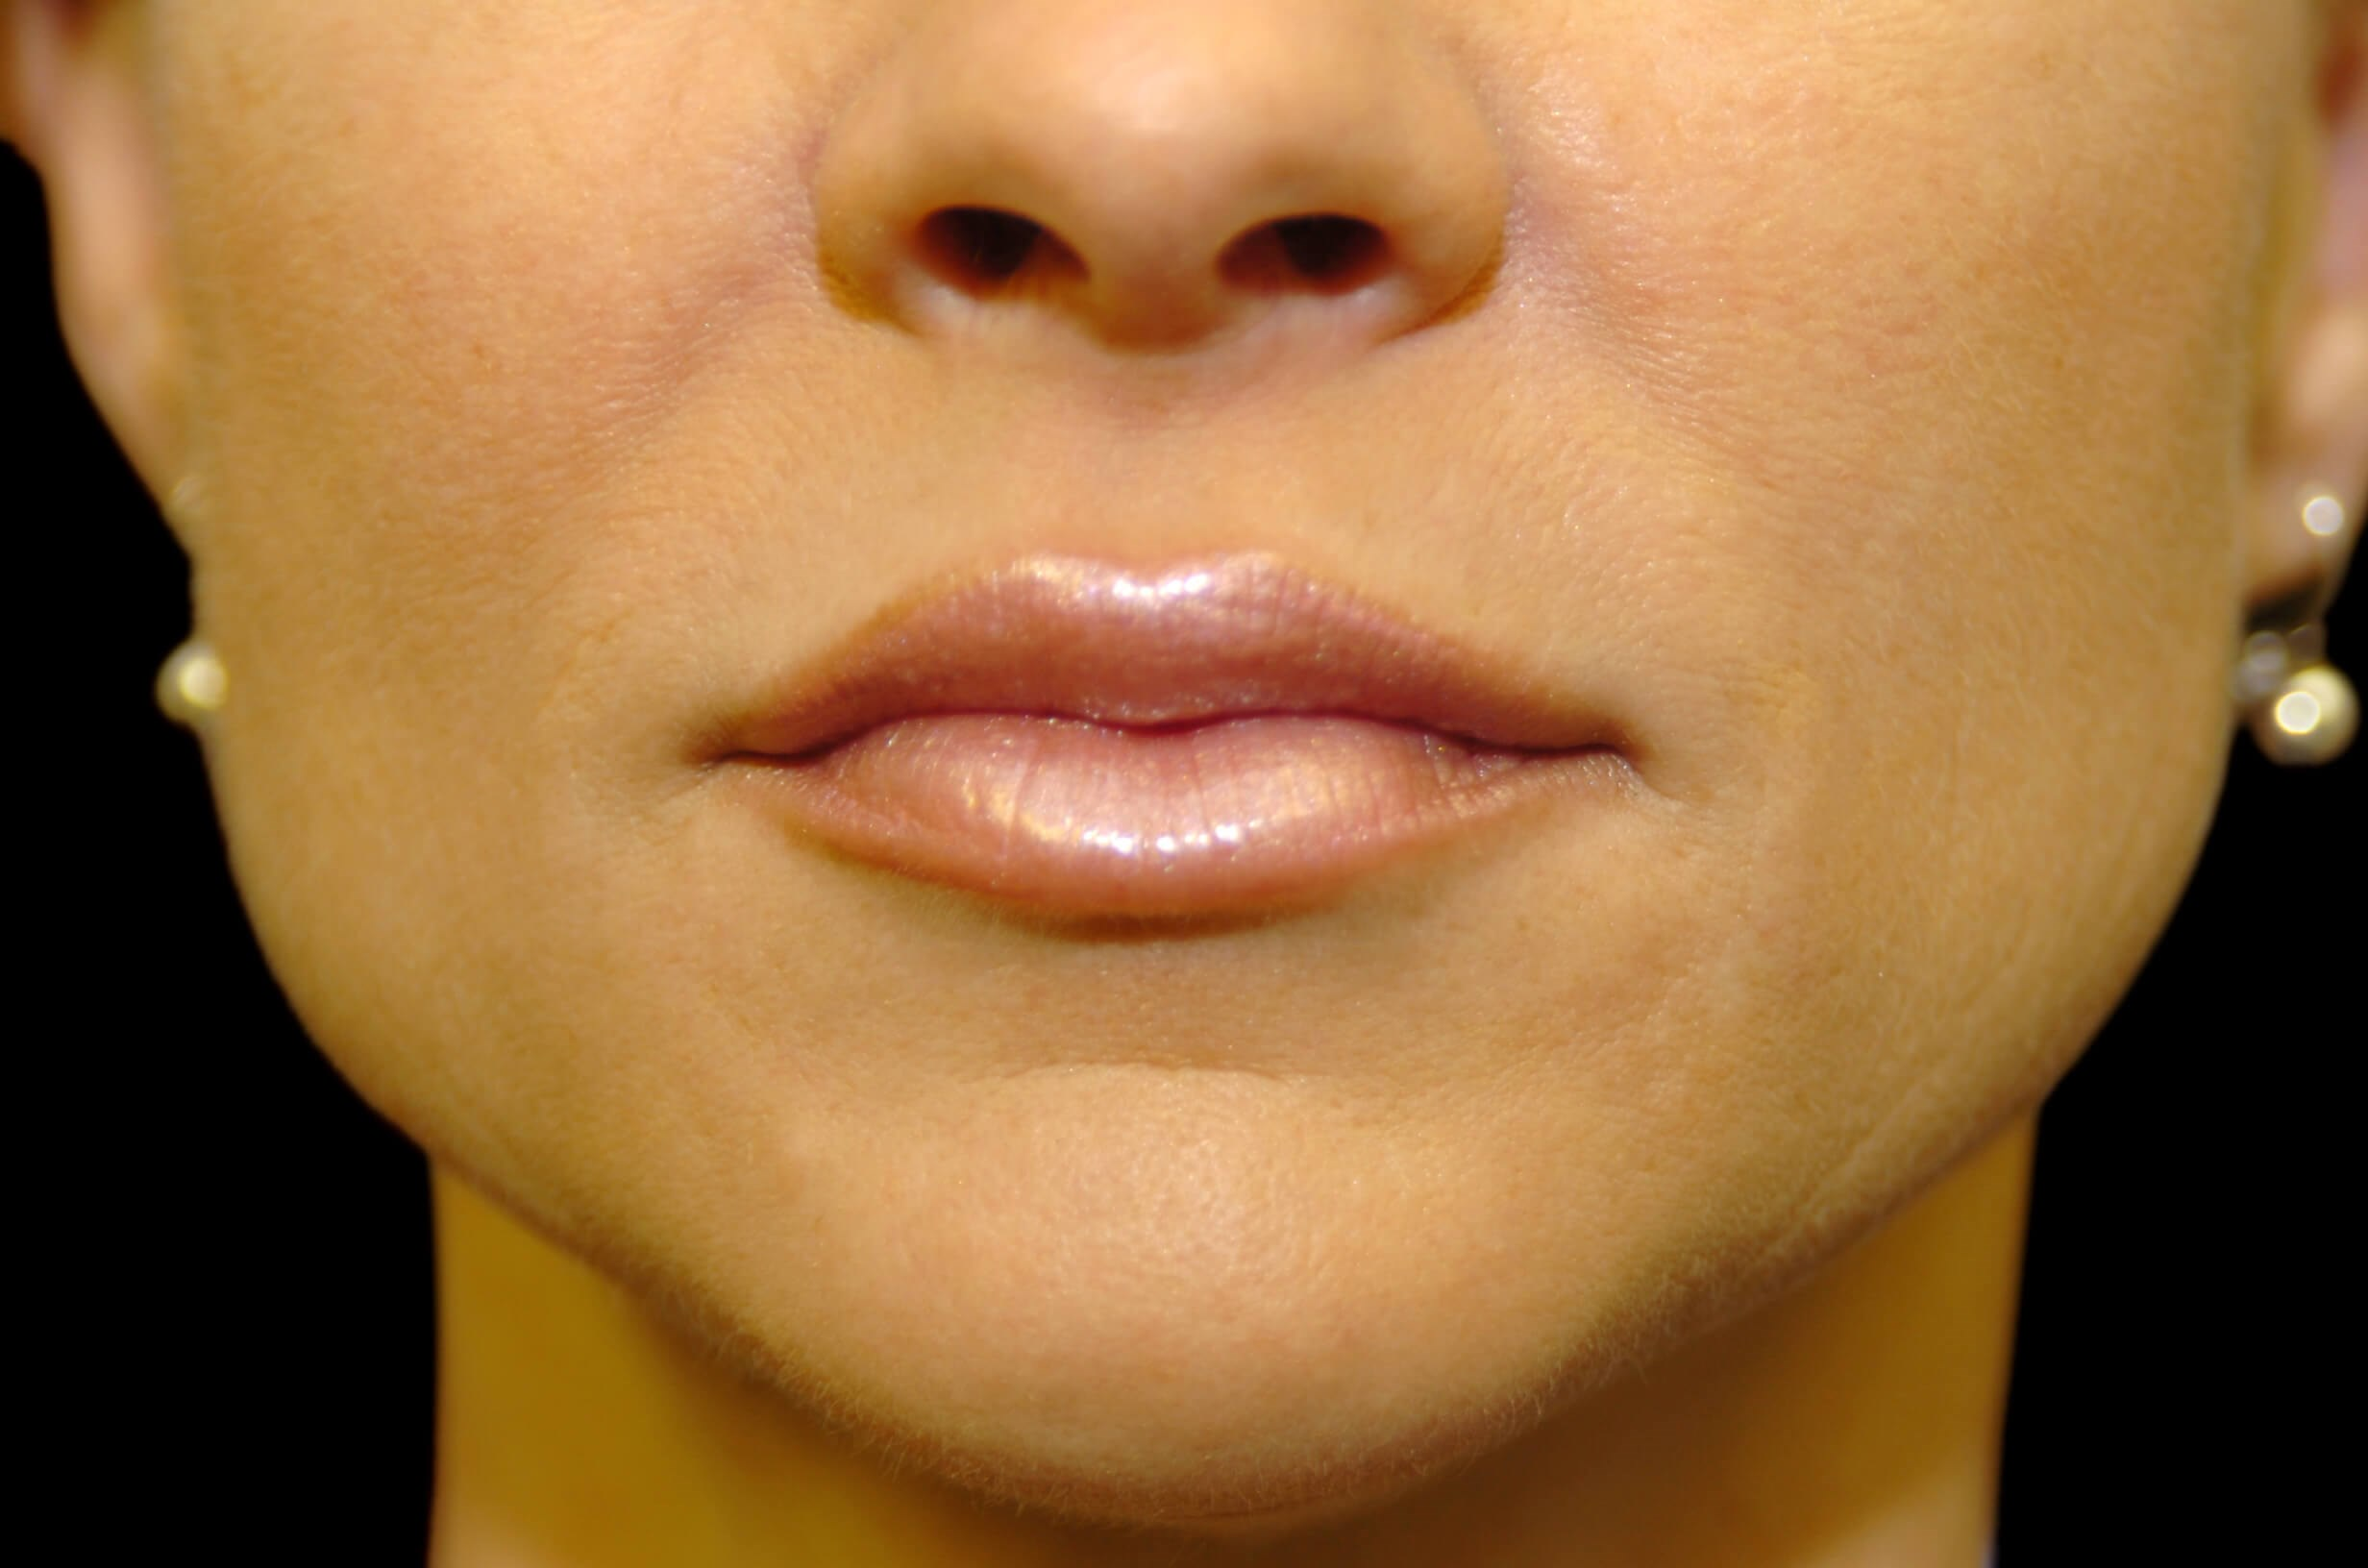 DALLAS, TEXAS WOMAN RESTORES VOLUME AND ENHANCES LIP WITH RESTYLANE LIP FILLER